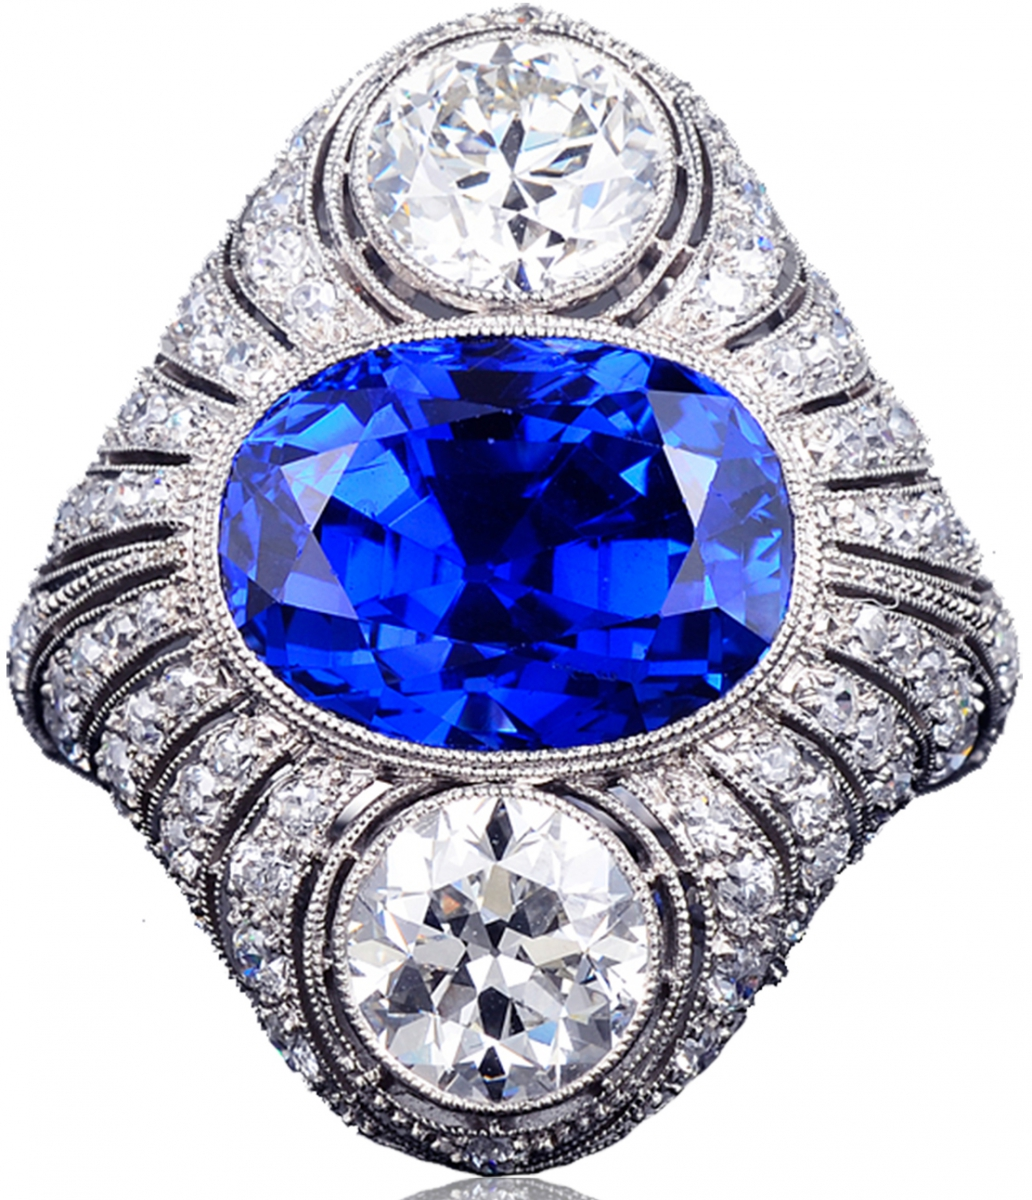 ceylon gems fine cts sapphires burma stars sapphire burmese star colored blue untreated and simply